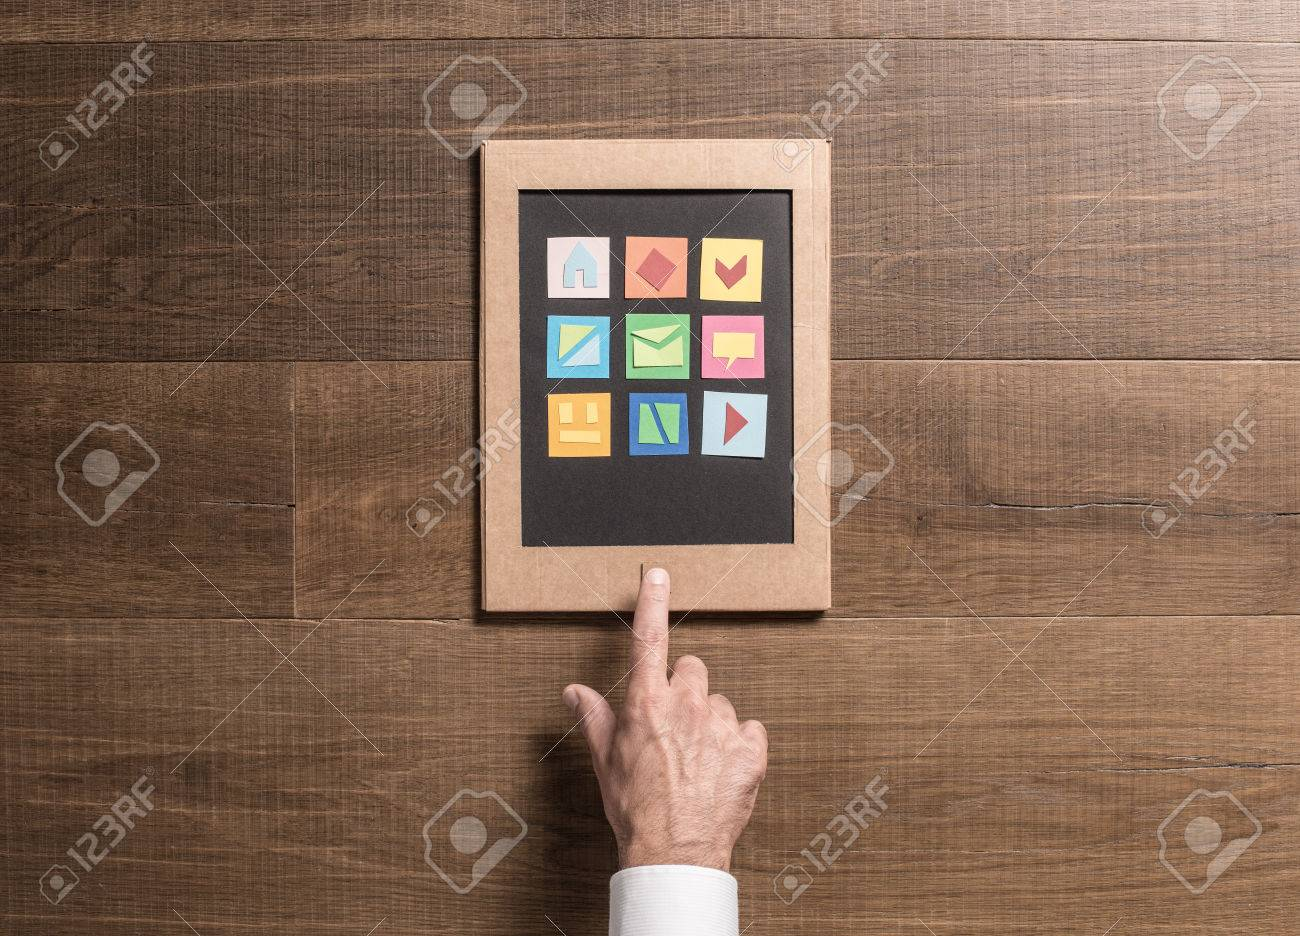 Man using an eco friendly creative tablet made from recycled man using an eco friendly creative tablet made from recycled cardboard and paper cuts jeuxipadfo Image collections